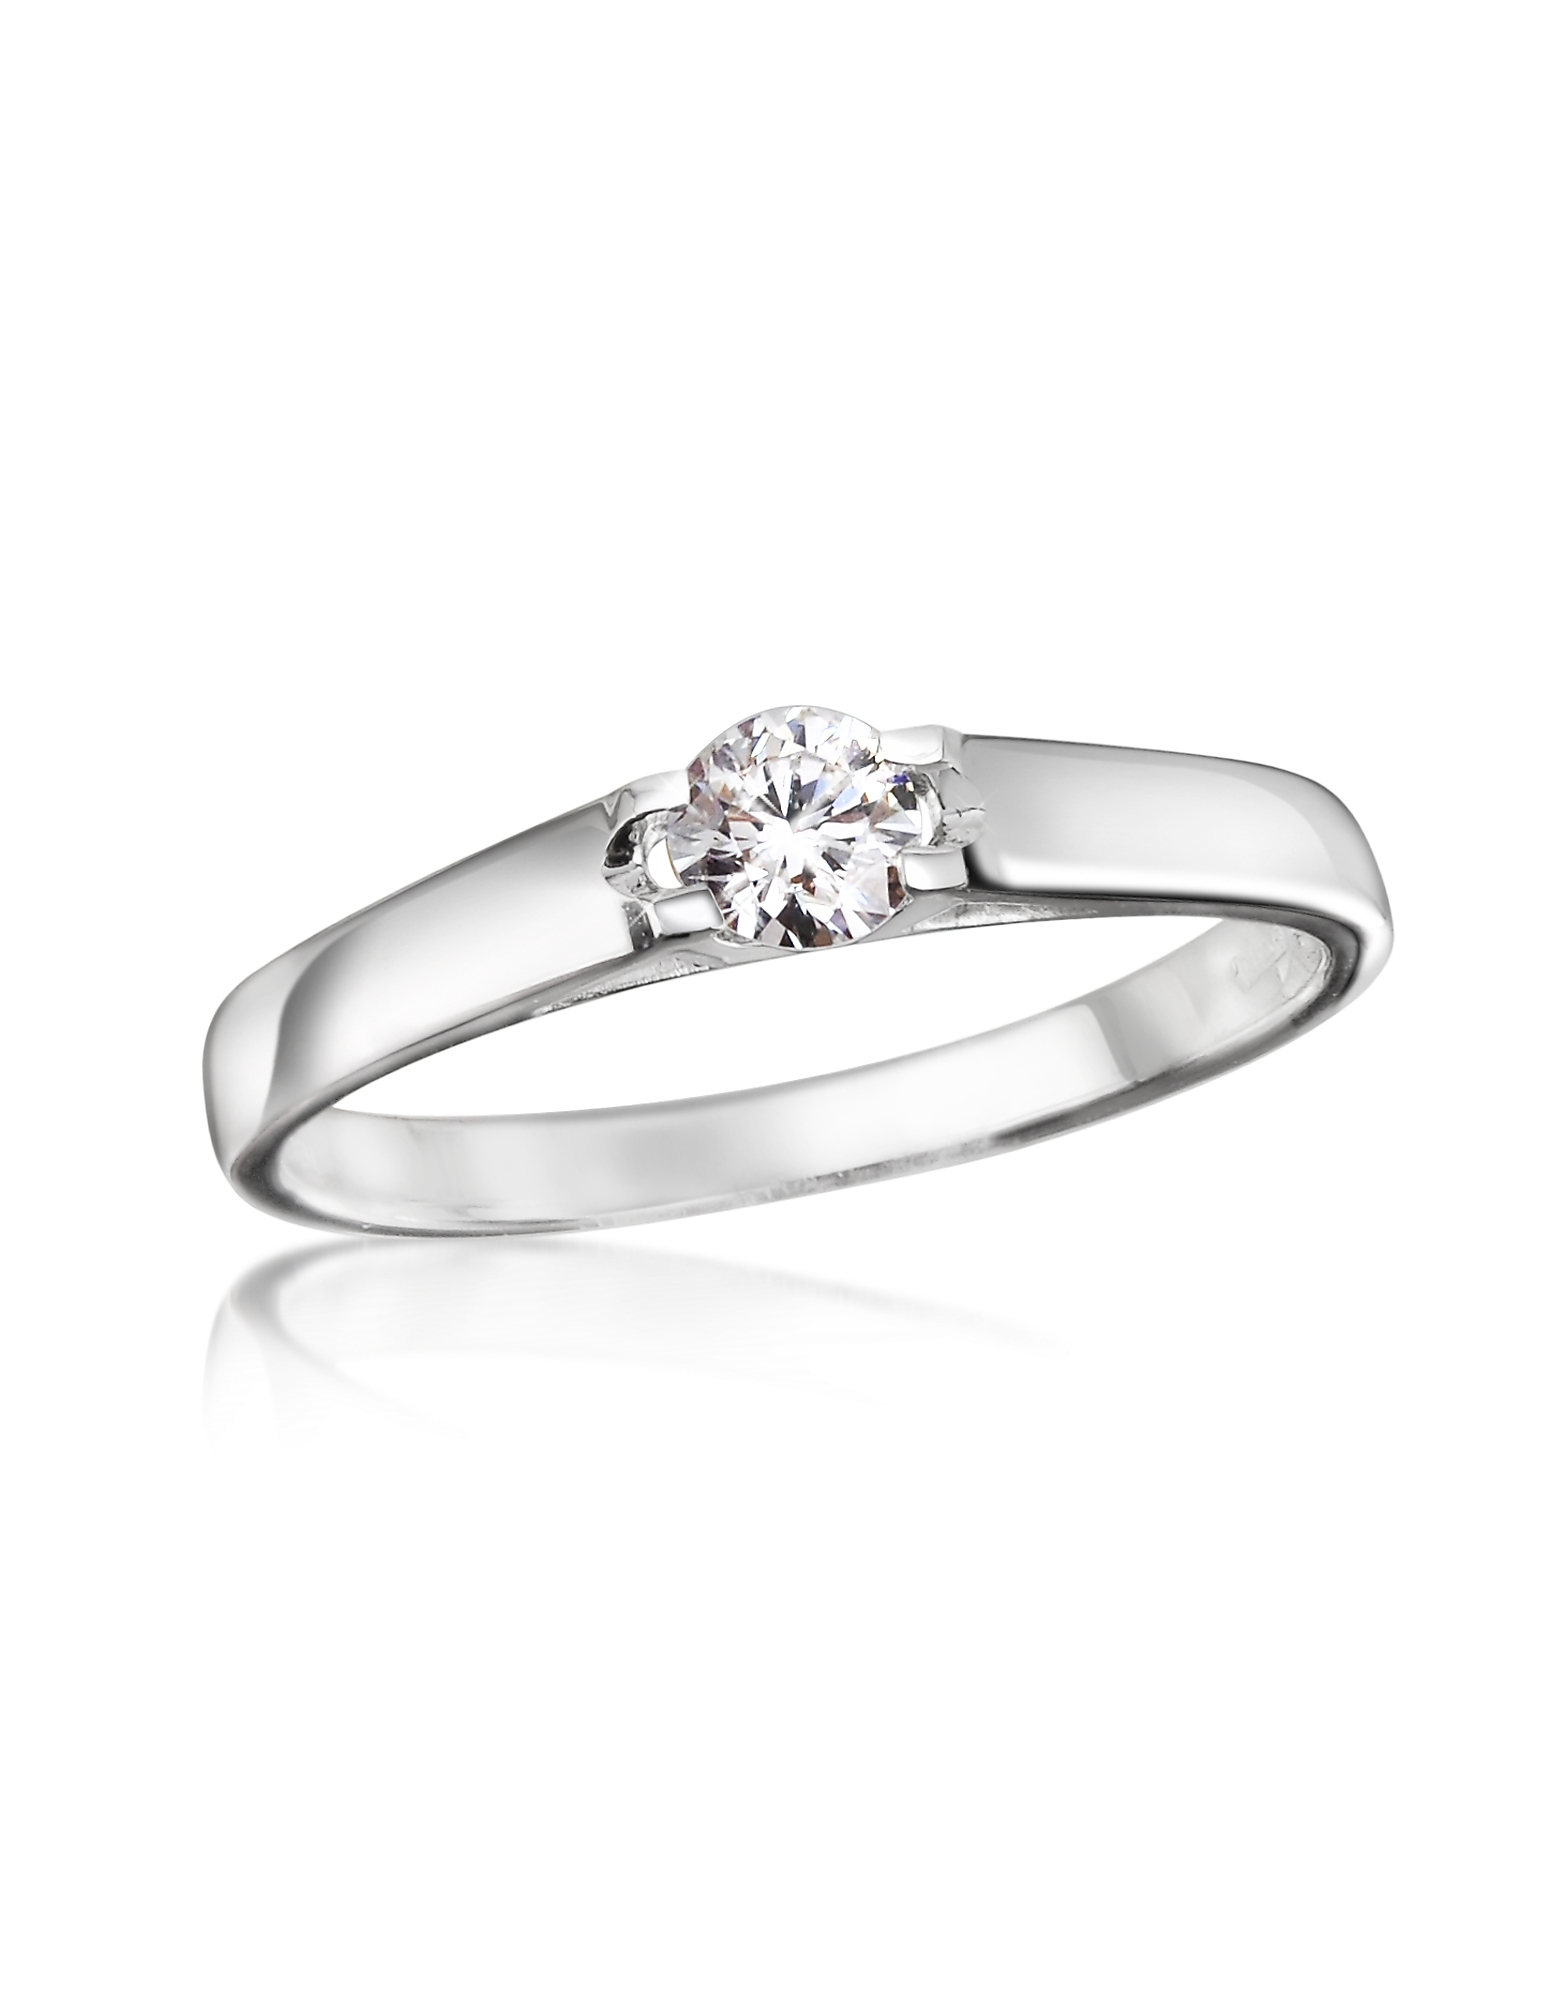 Forzieri Rings, 0.24 ctw Diamond Solitaire Ring